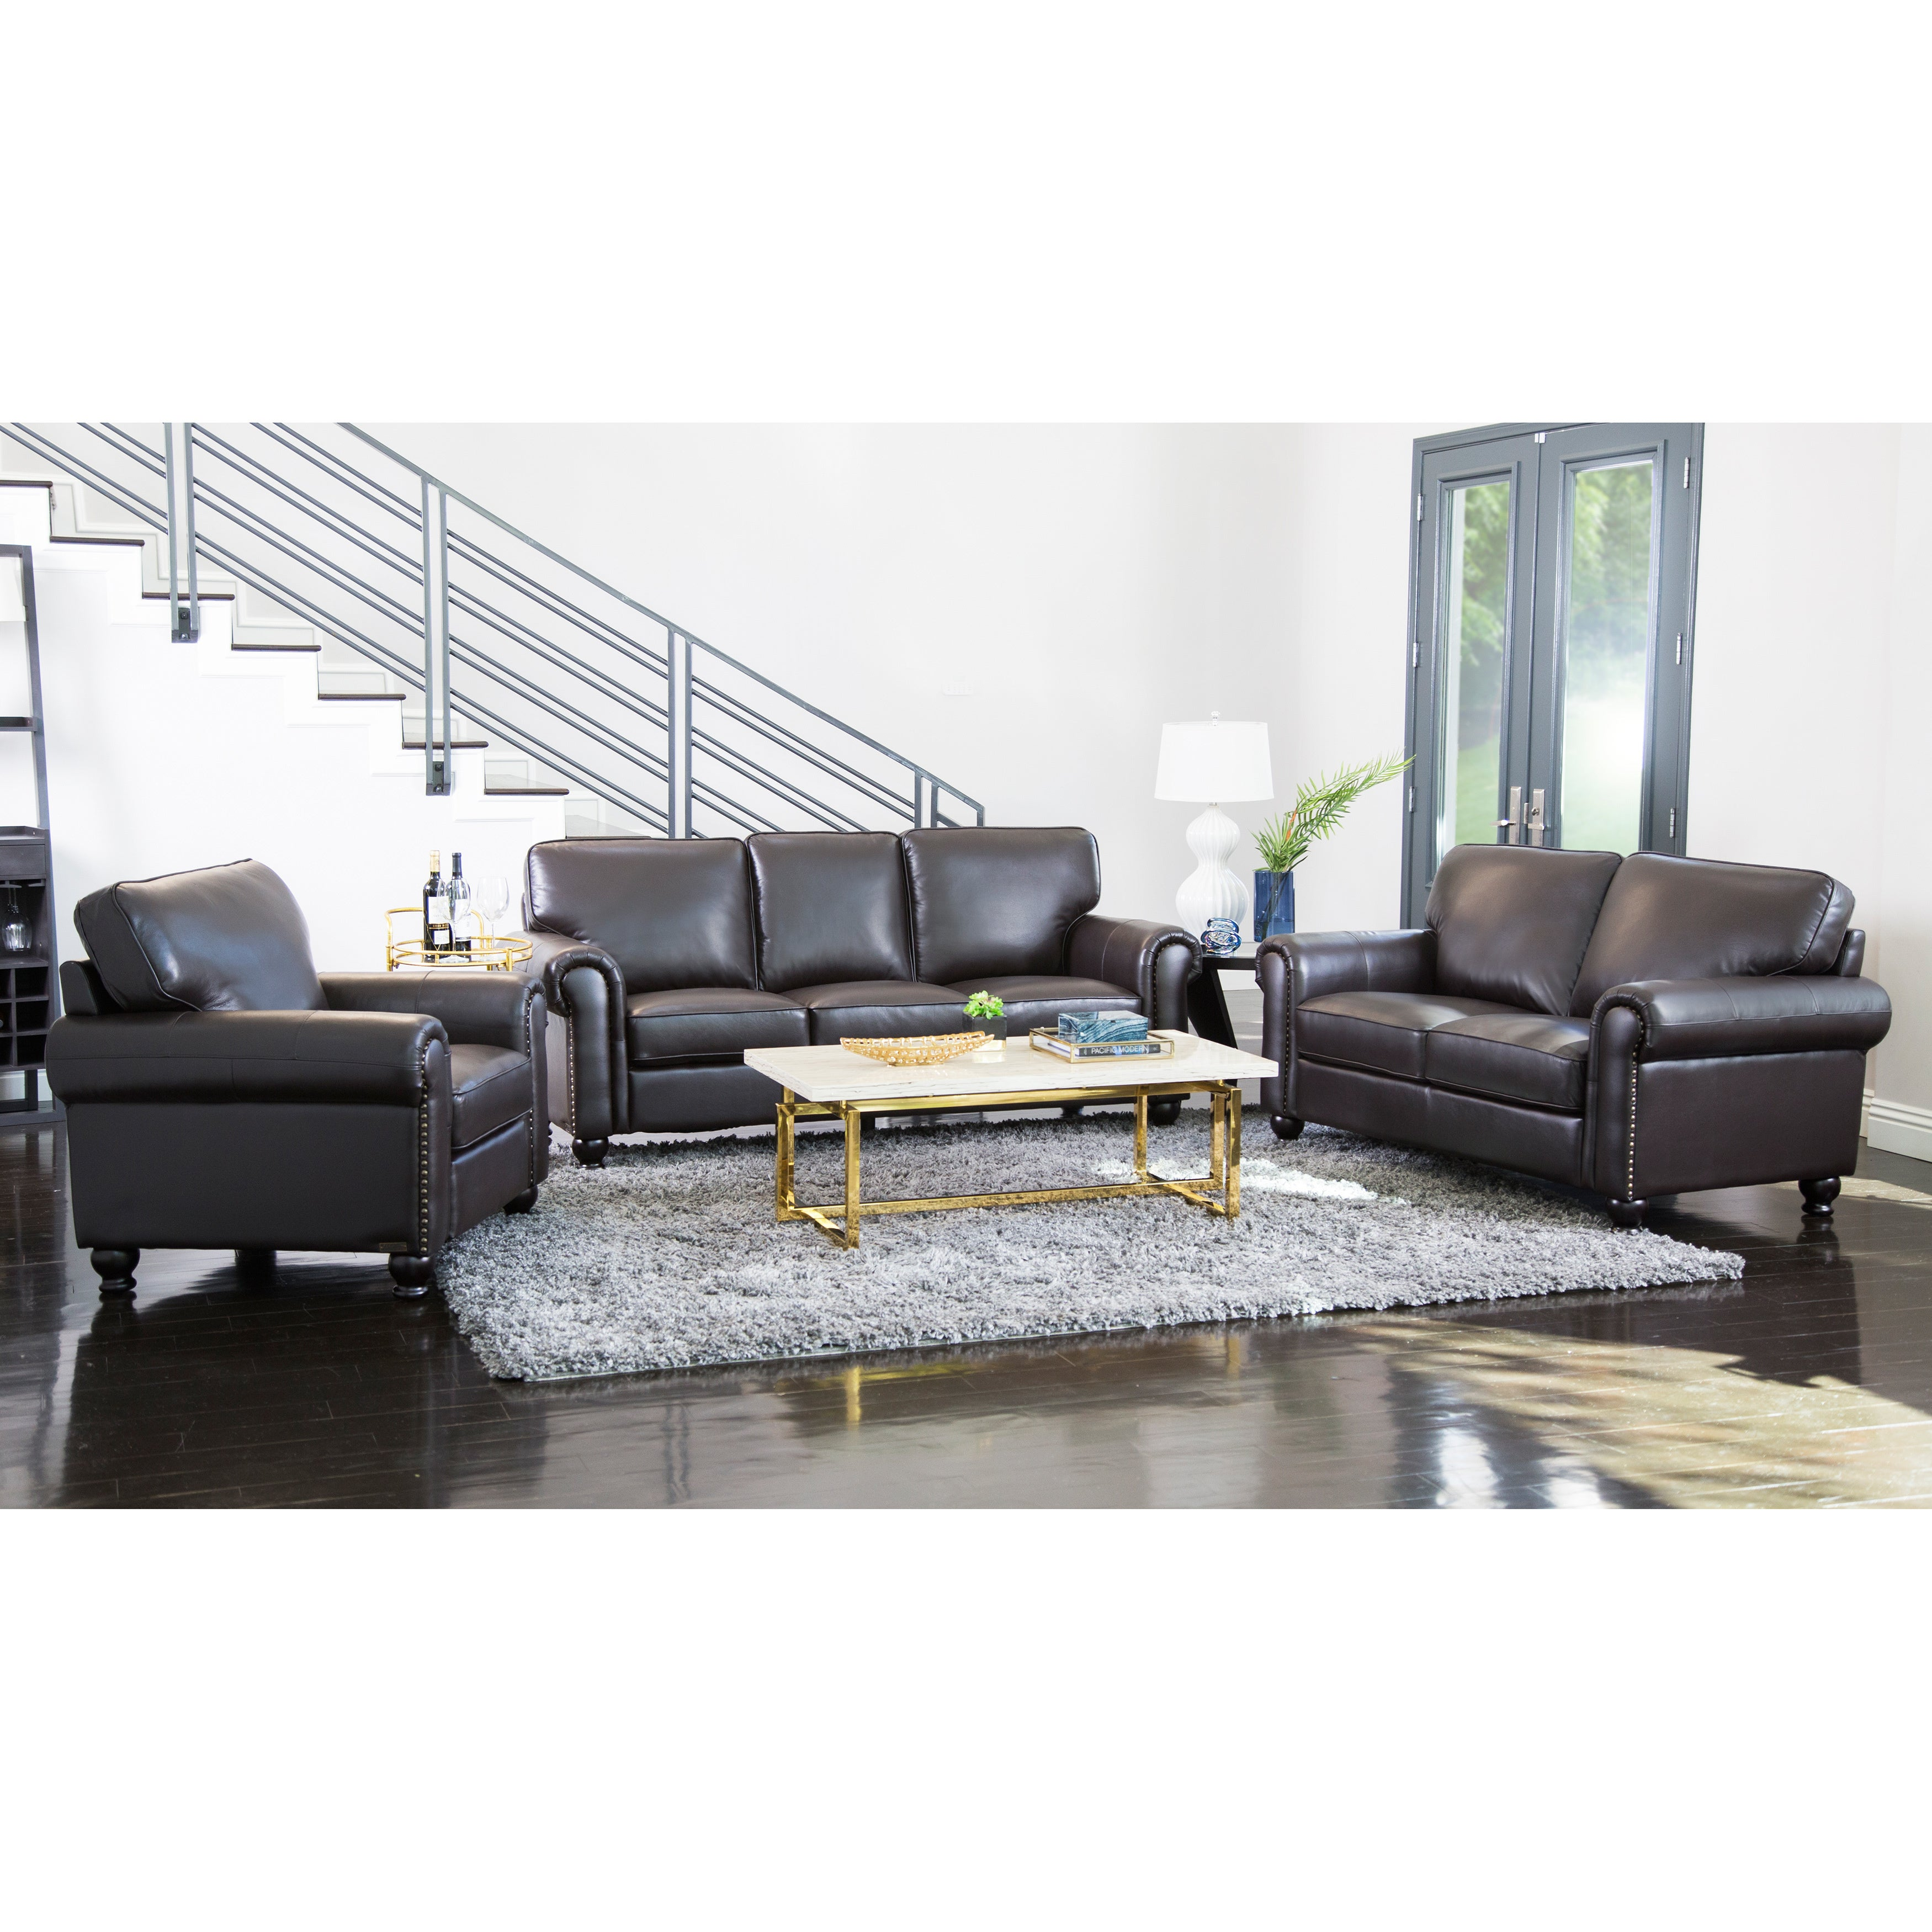 Abbyson London Top Grain Leather Living Room Sofa Set   Free Shipping Today    Overstock   14785428